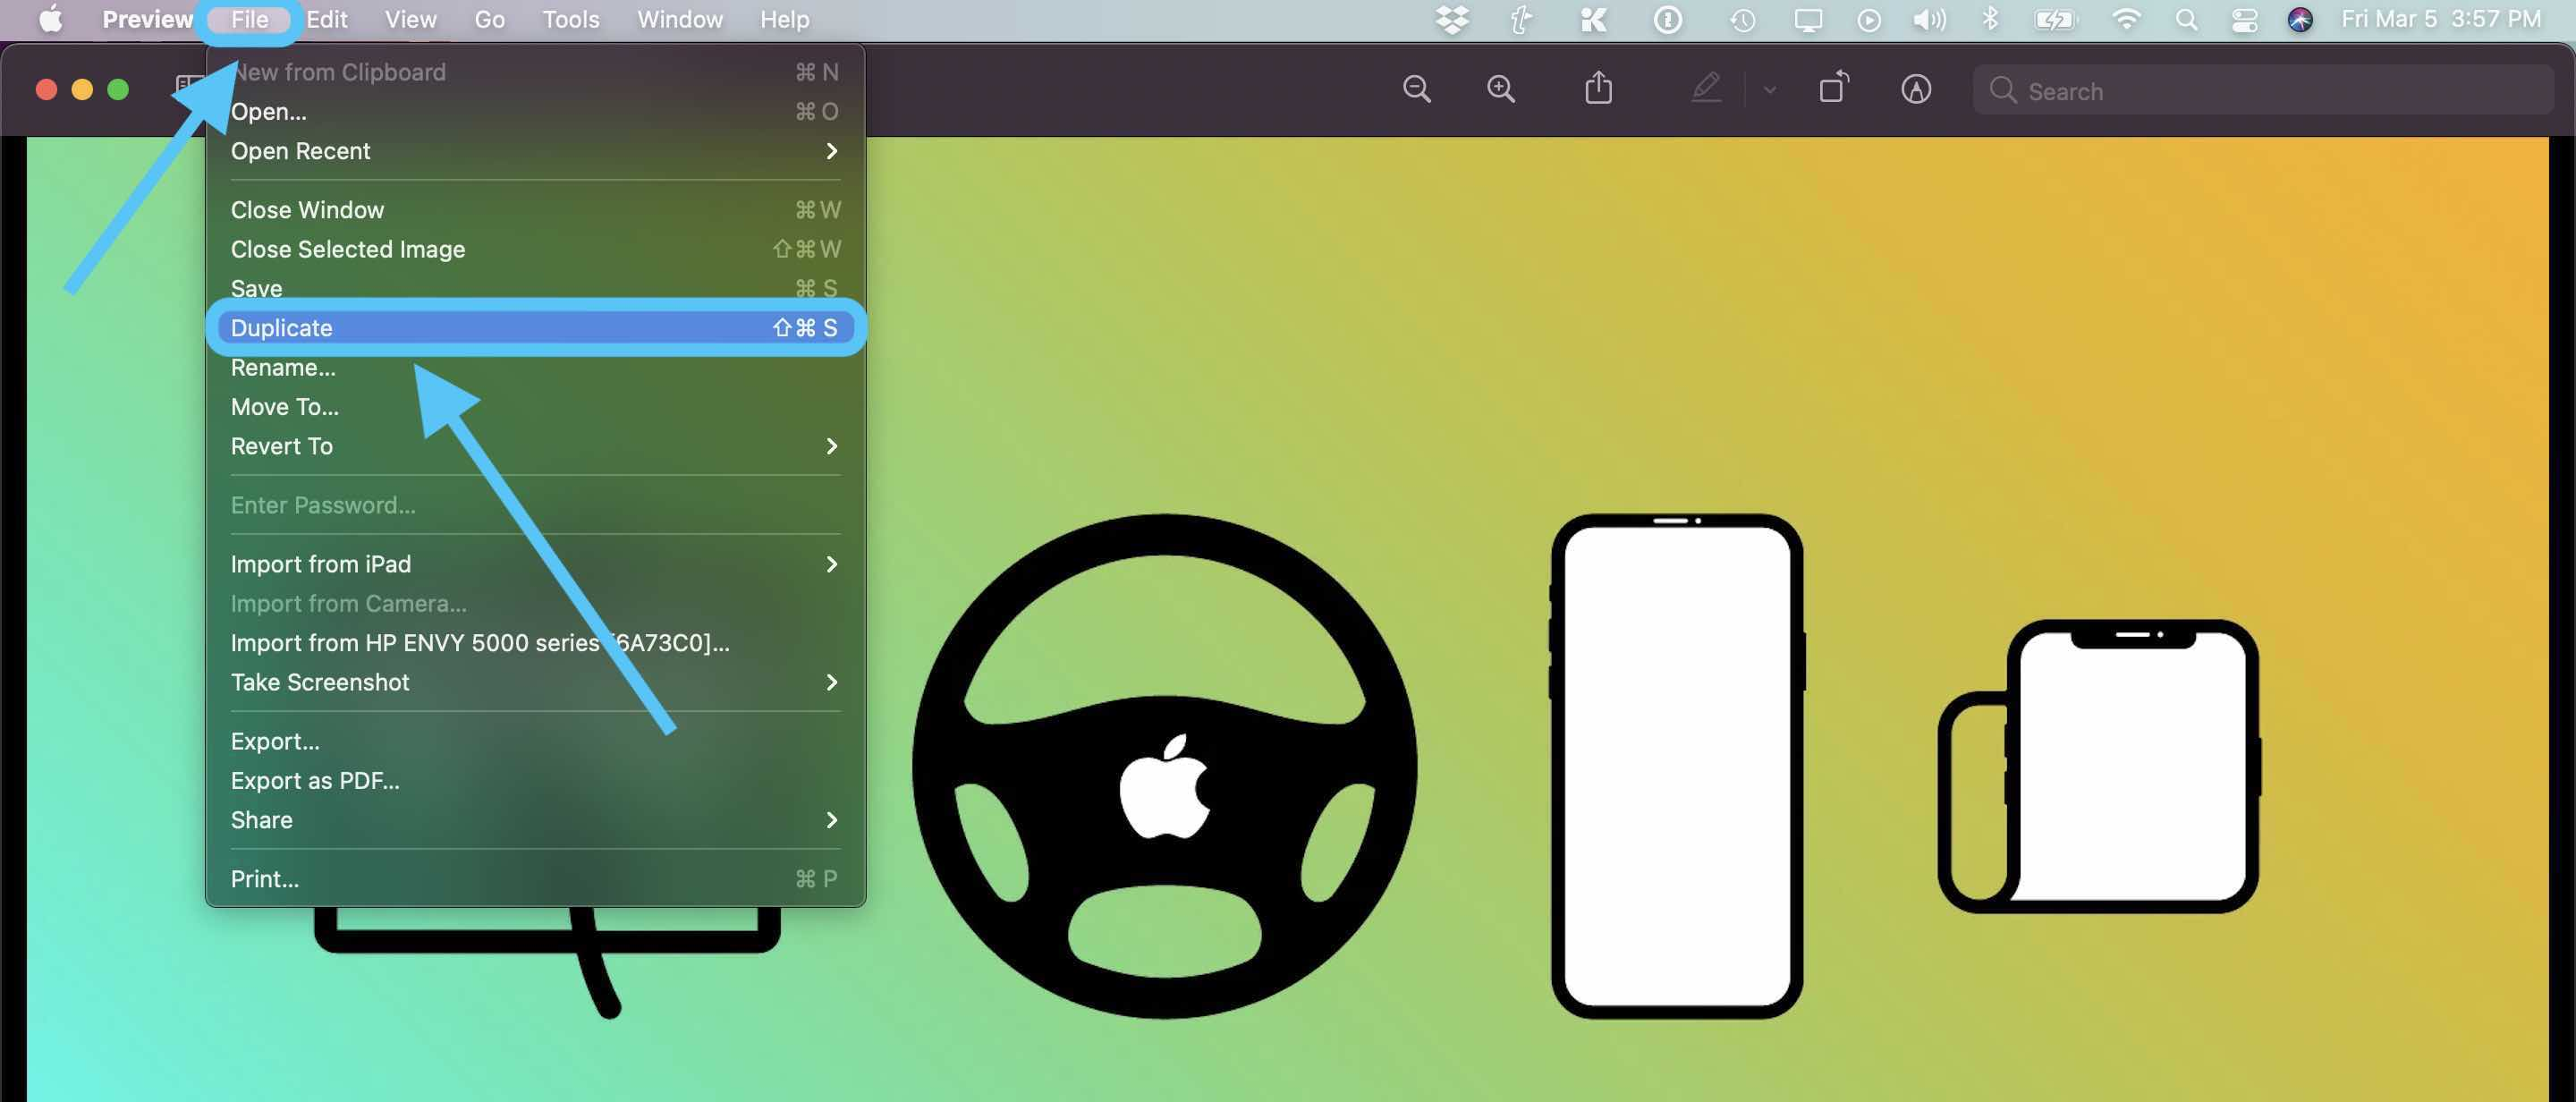 How to convert webp images to jpg and more on Mac walkthrough 1